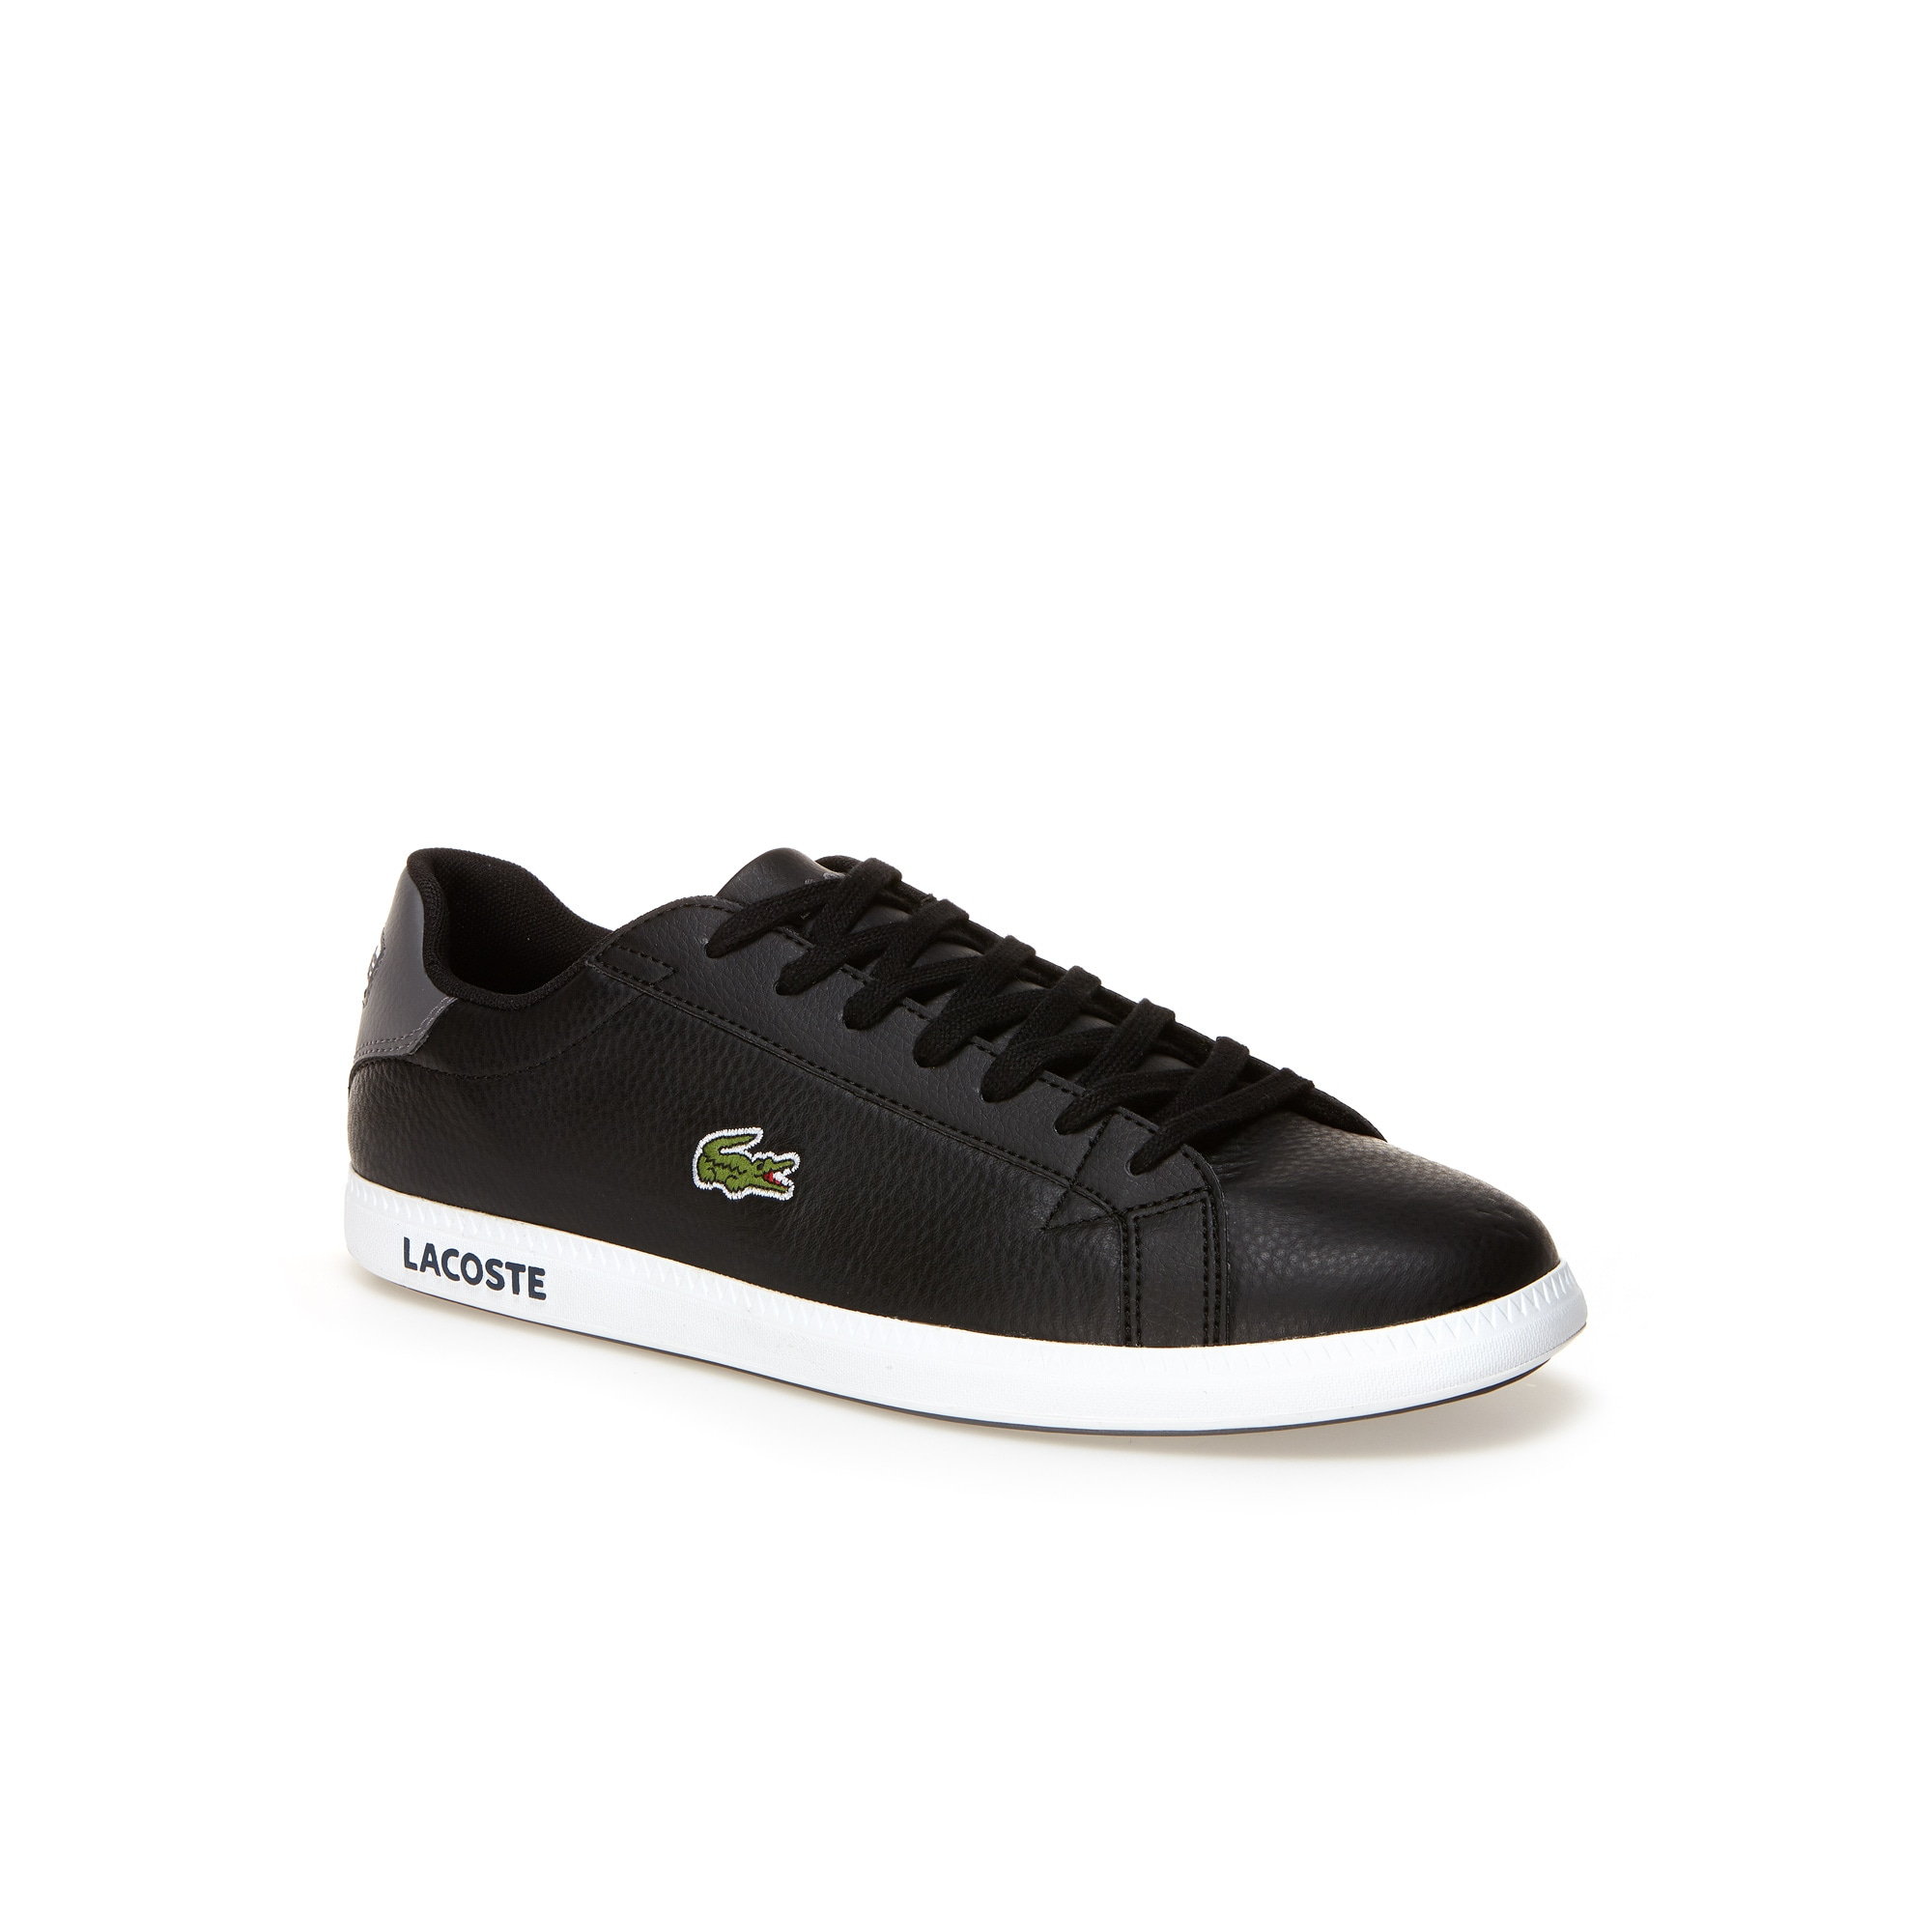 e299177ca4c05 30% off. Men s Graduate Leather Trainers. 315.00 SAR. 450.00 SAR. OFF WHITE NATURAL  · 67F NAVY NATURAL